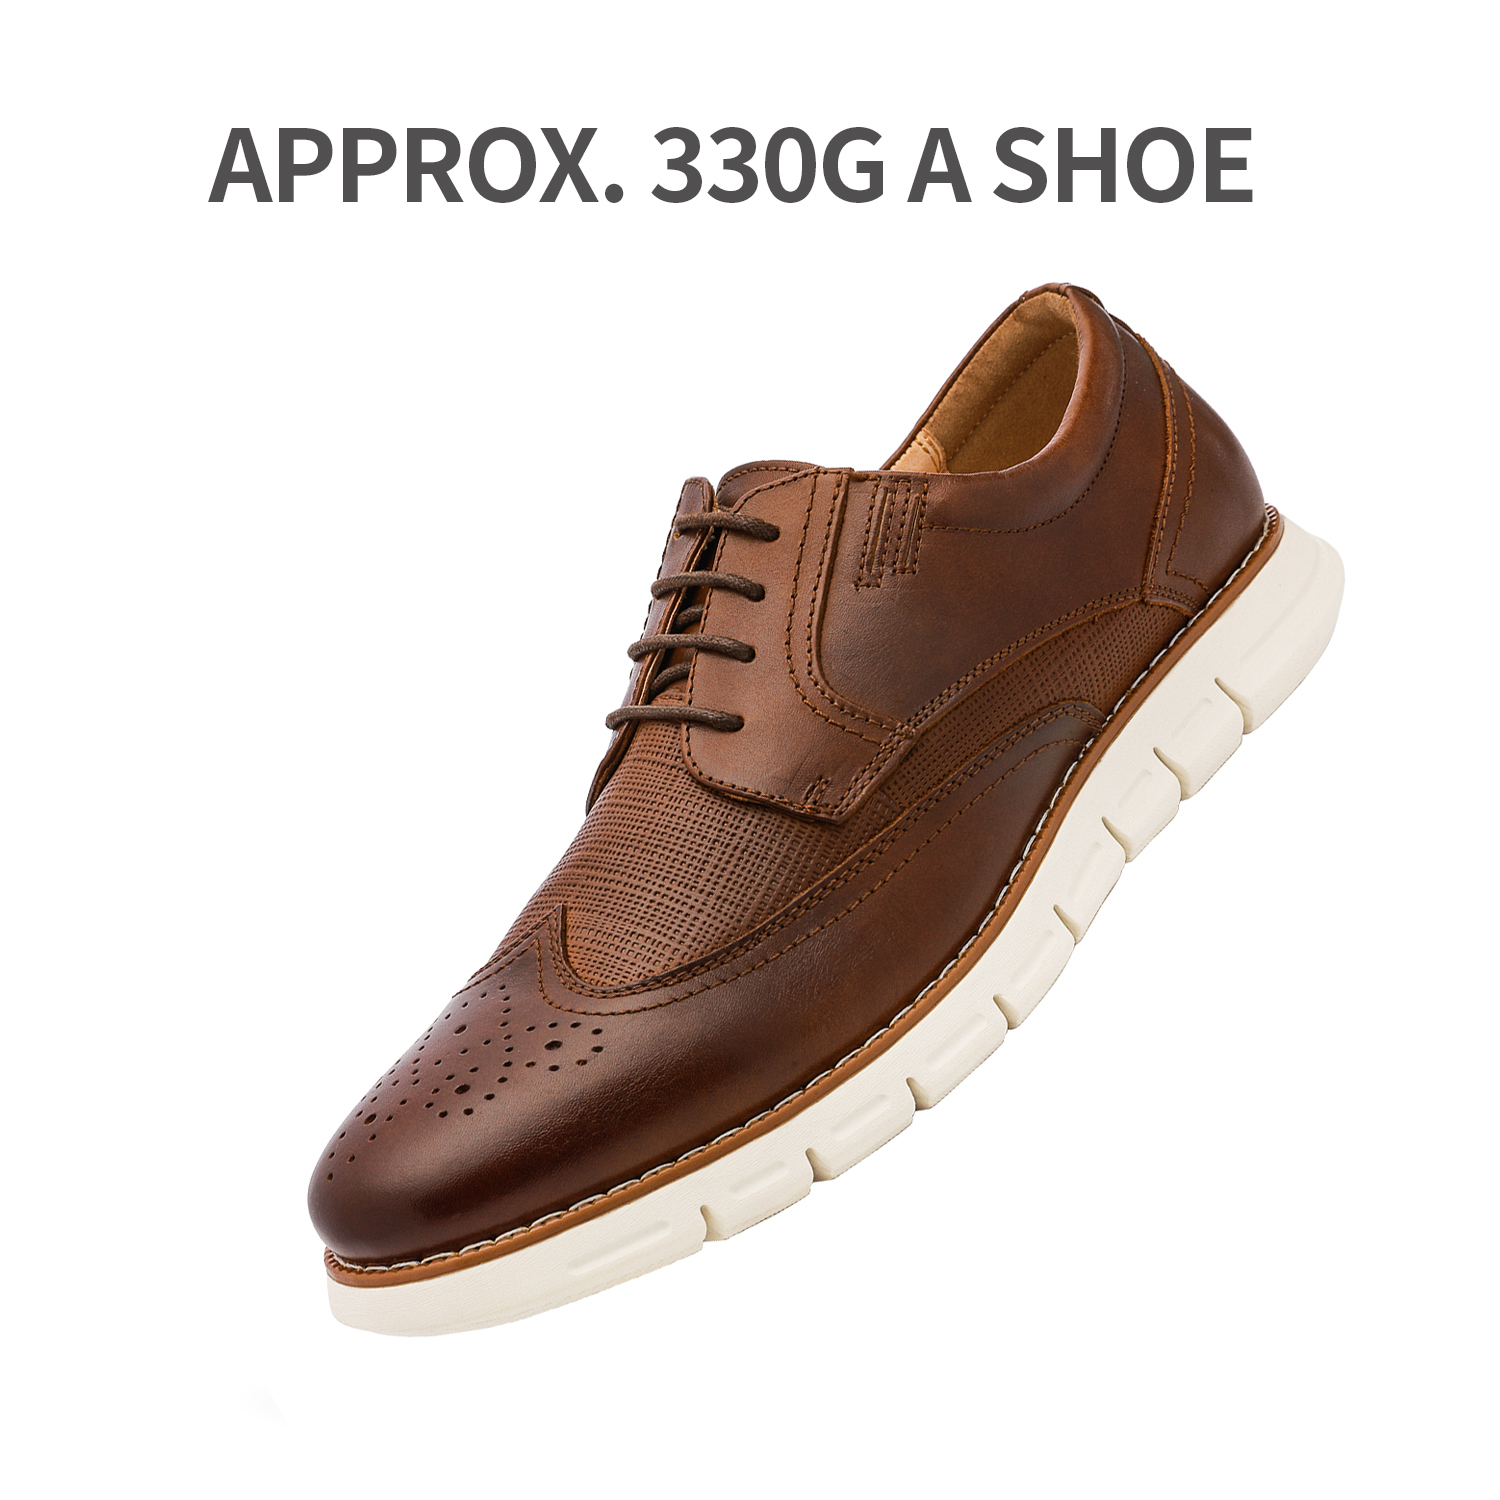 Men-s-Genuine-Leather-Casual-Formal-Sneakers-Lace-up-Business-Oxford-Dress-Shoes thumbnail 29